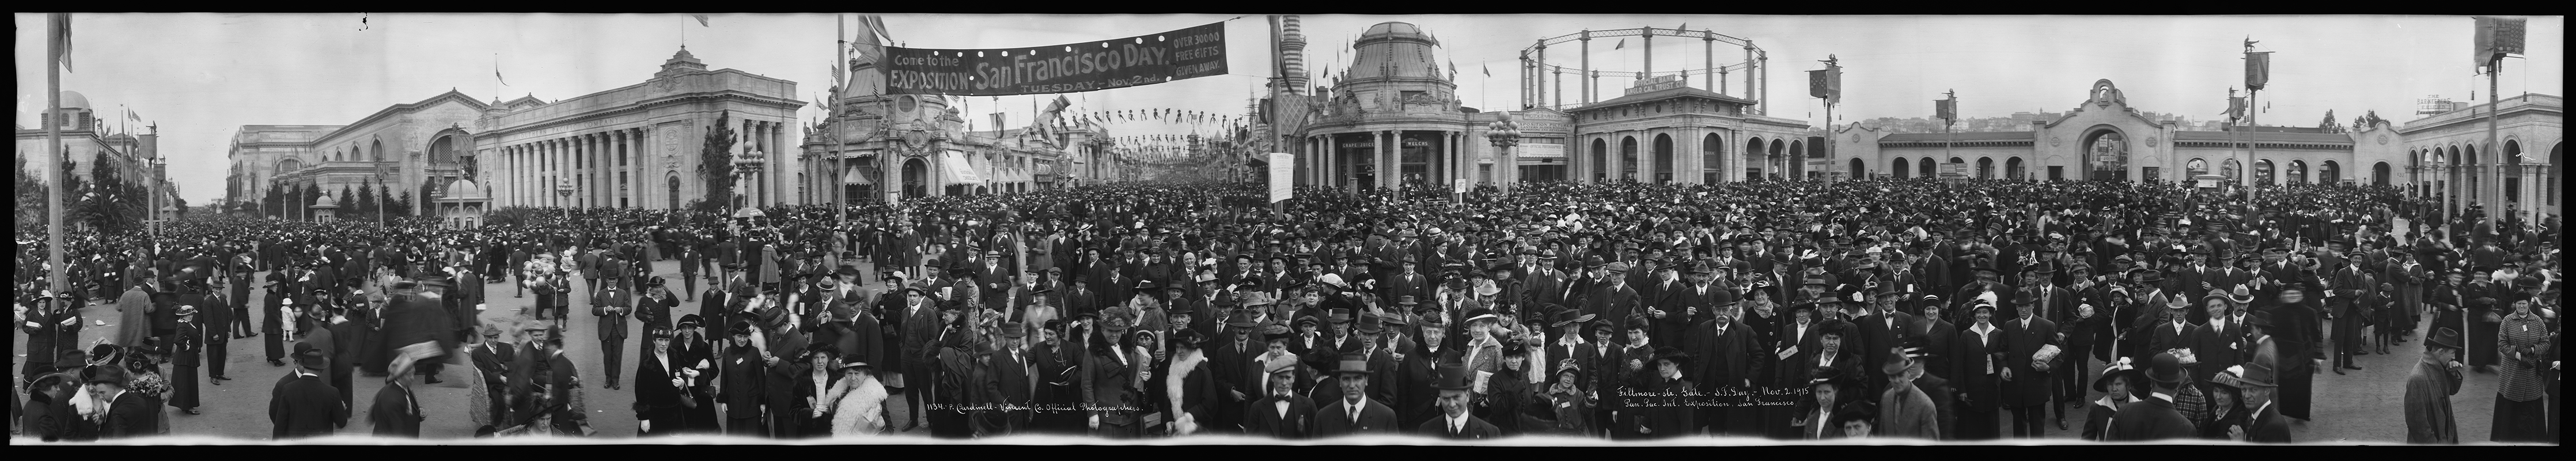 Panoramic photo of crowd inside Fillmore Street Gate and the Panama Pacific Exposition, Nov. 2, 1915.